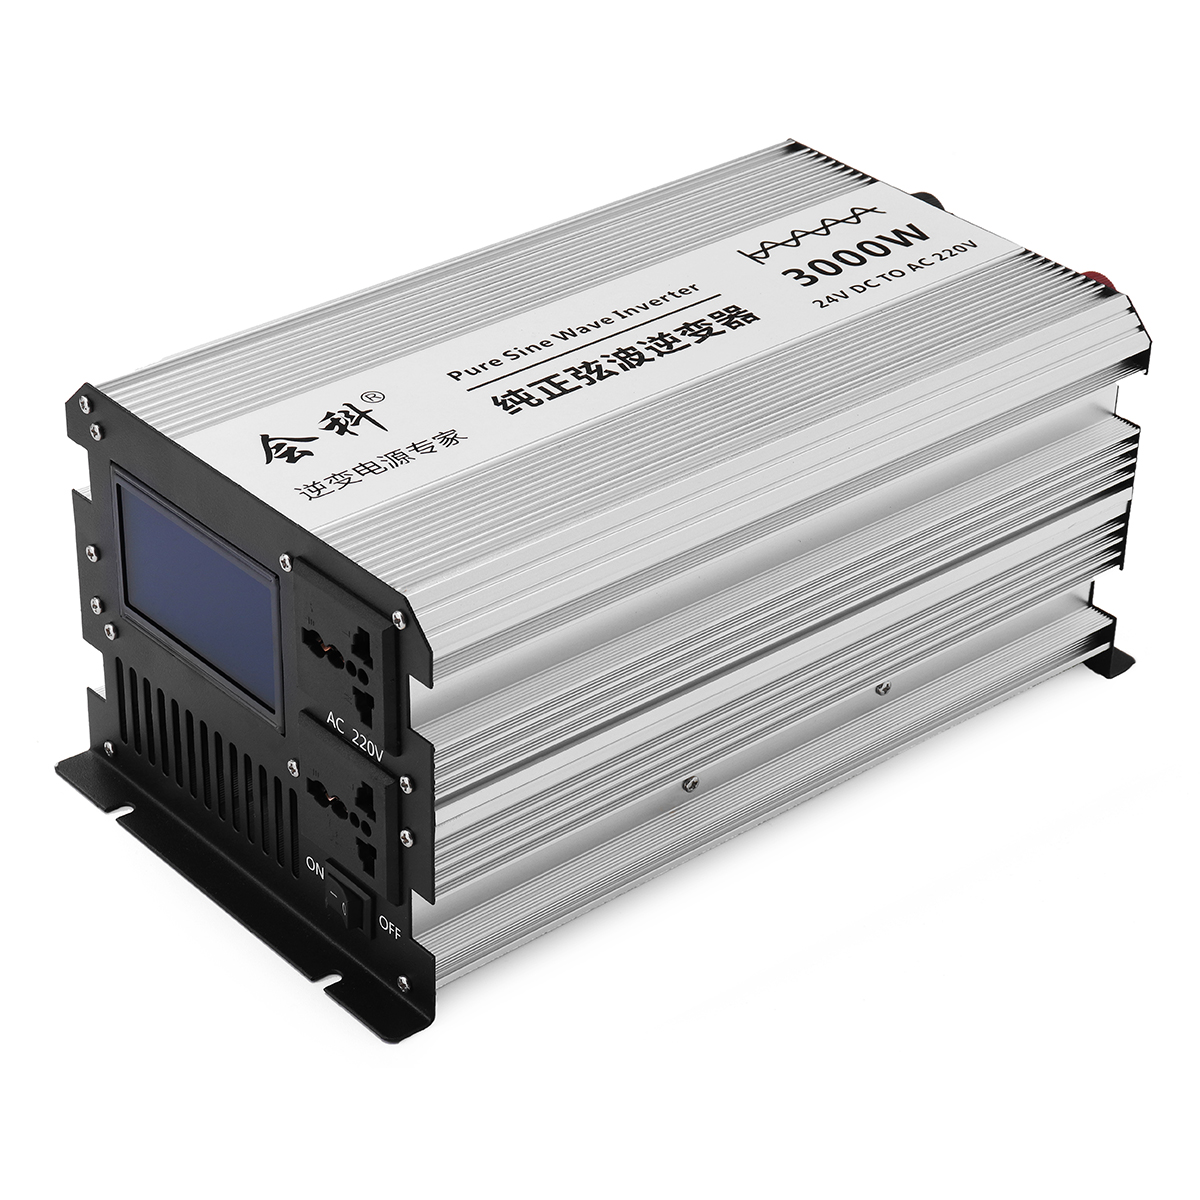 DC 12V 24V 48V 1500W Peak 3000W Large Size Liquid Crystal Display Pure Sine Wave Car Power Inverter